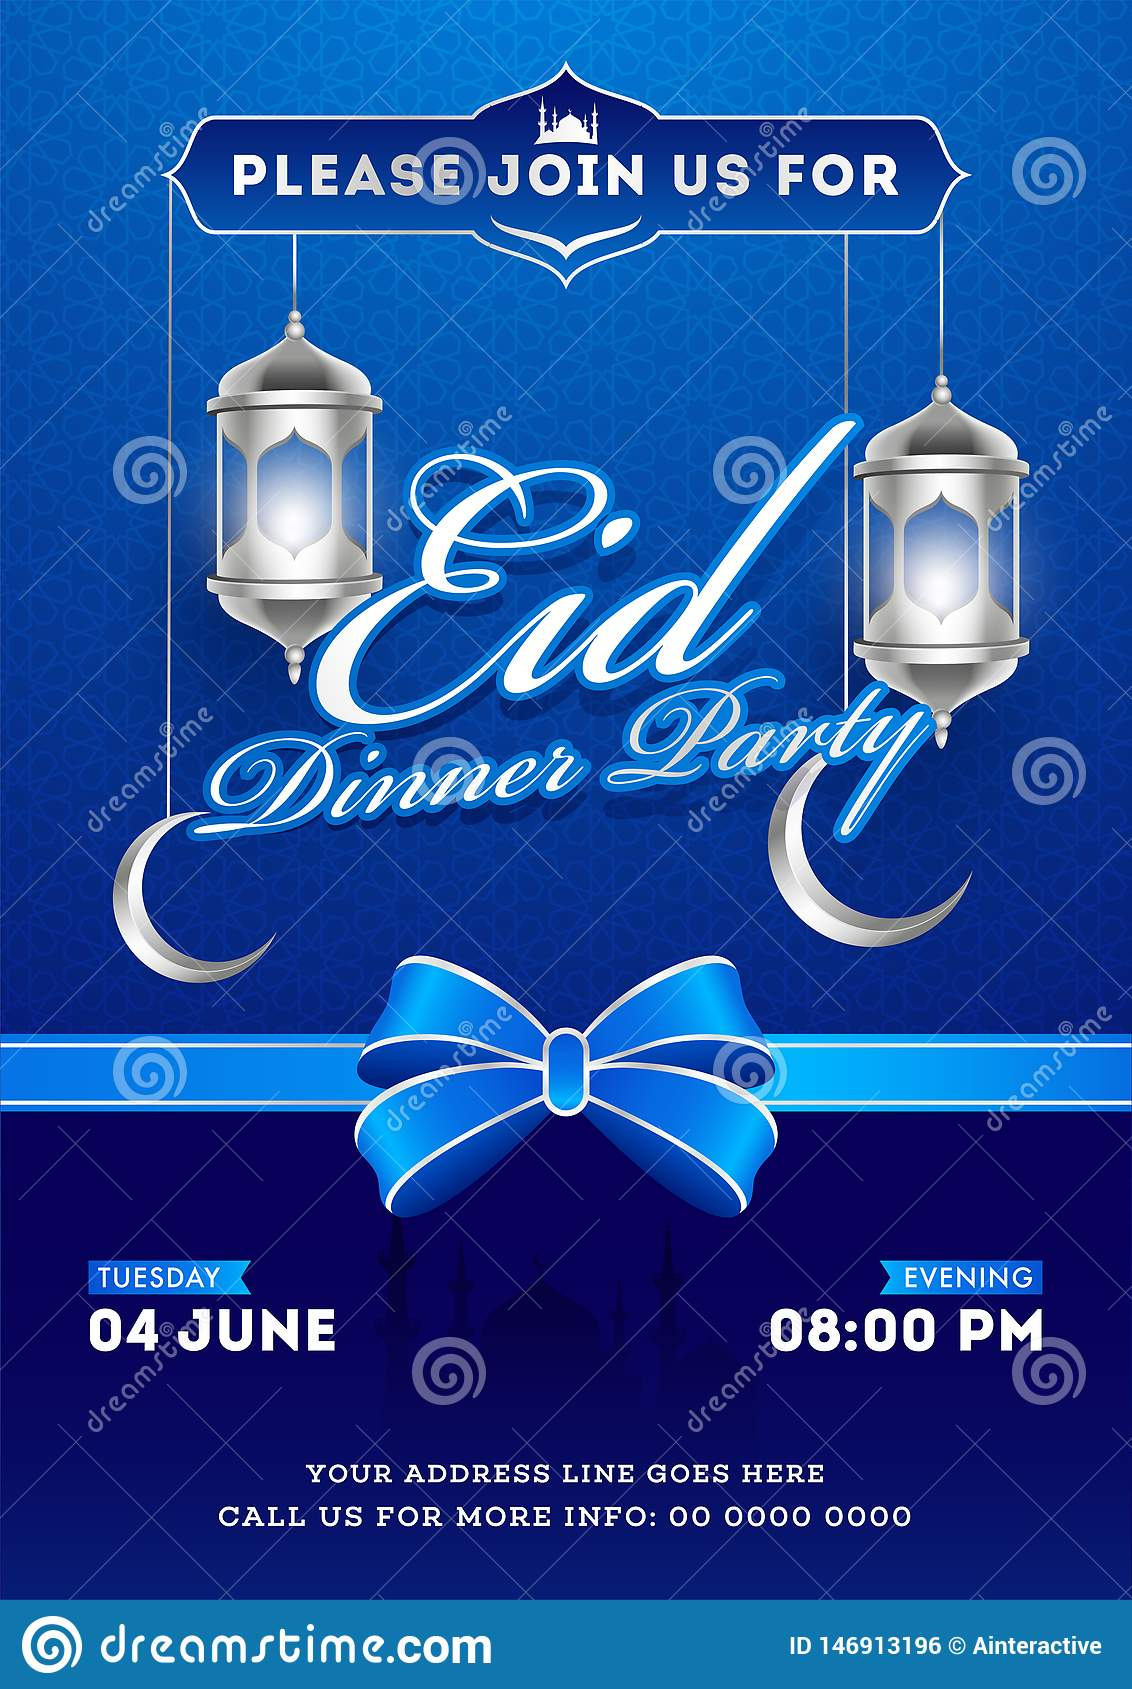 Eid Dinner Party Invitation Card Design With Silver Illuminated